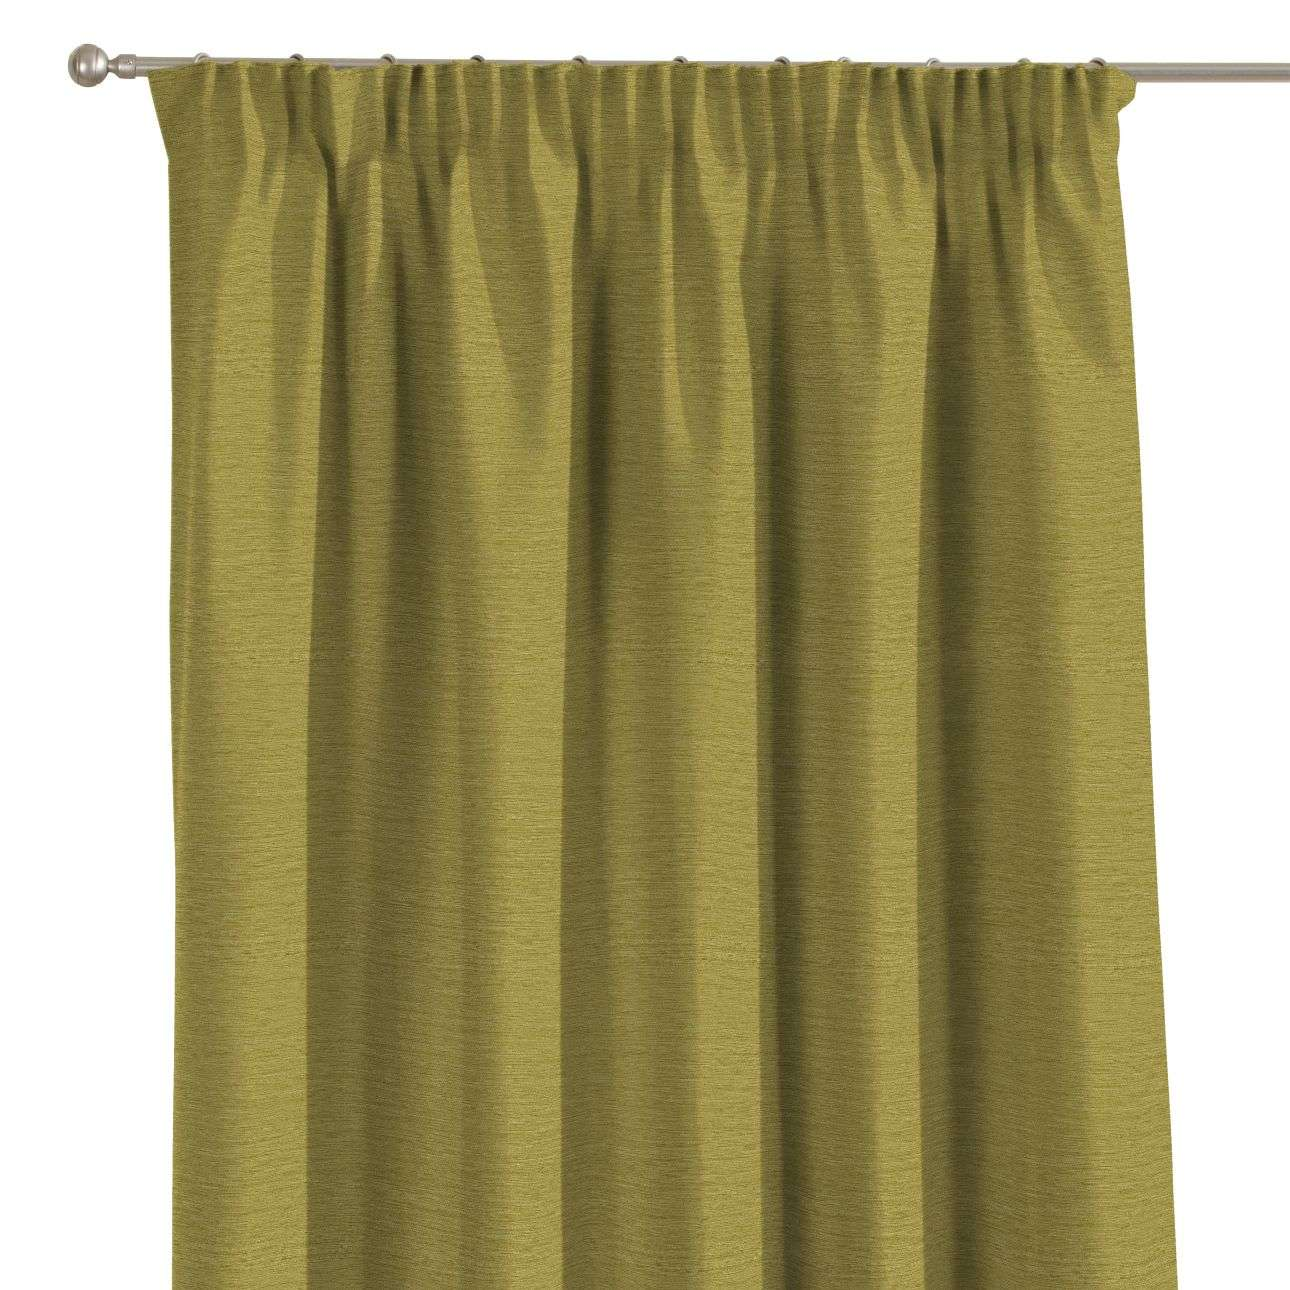 Pencil pleat curtains in collection Chenille, fabric: 160-47